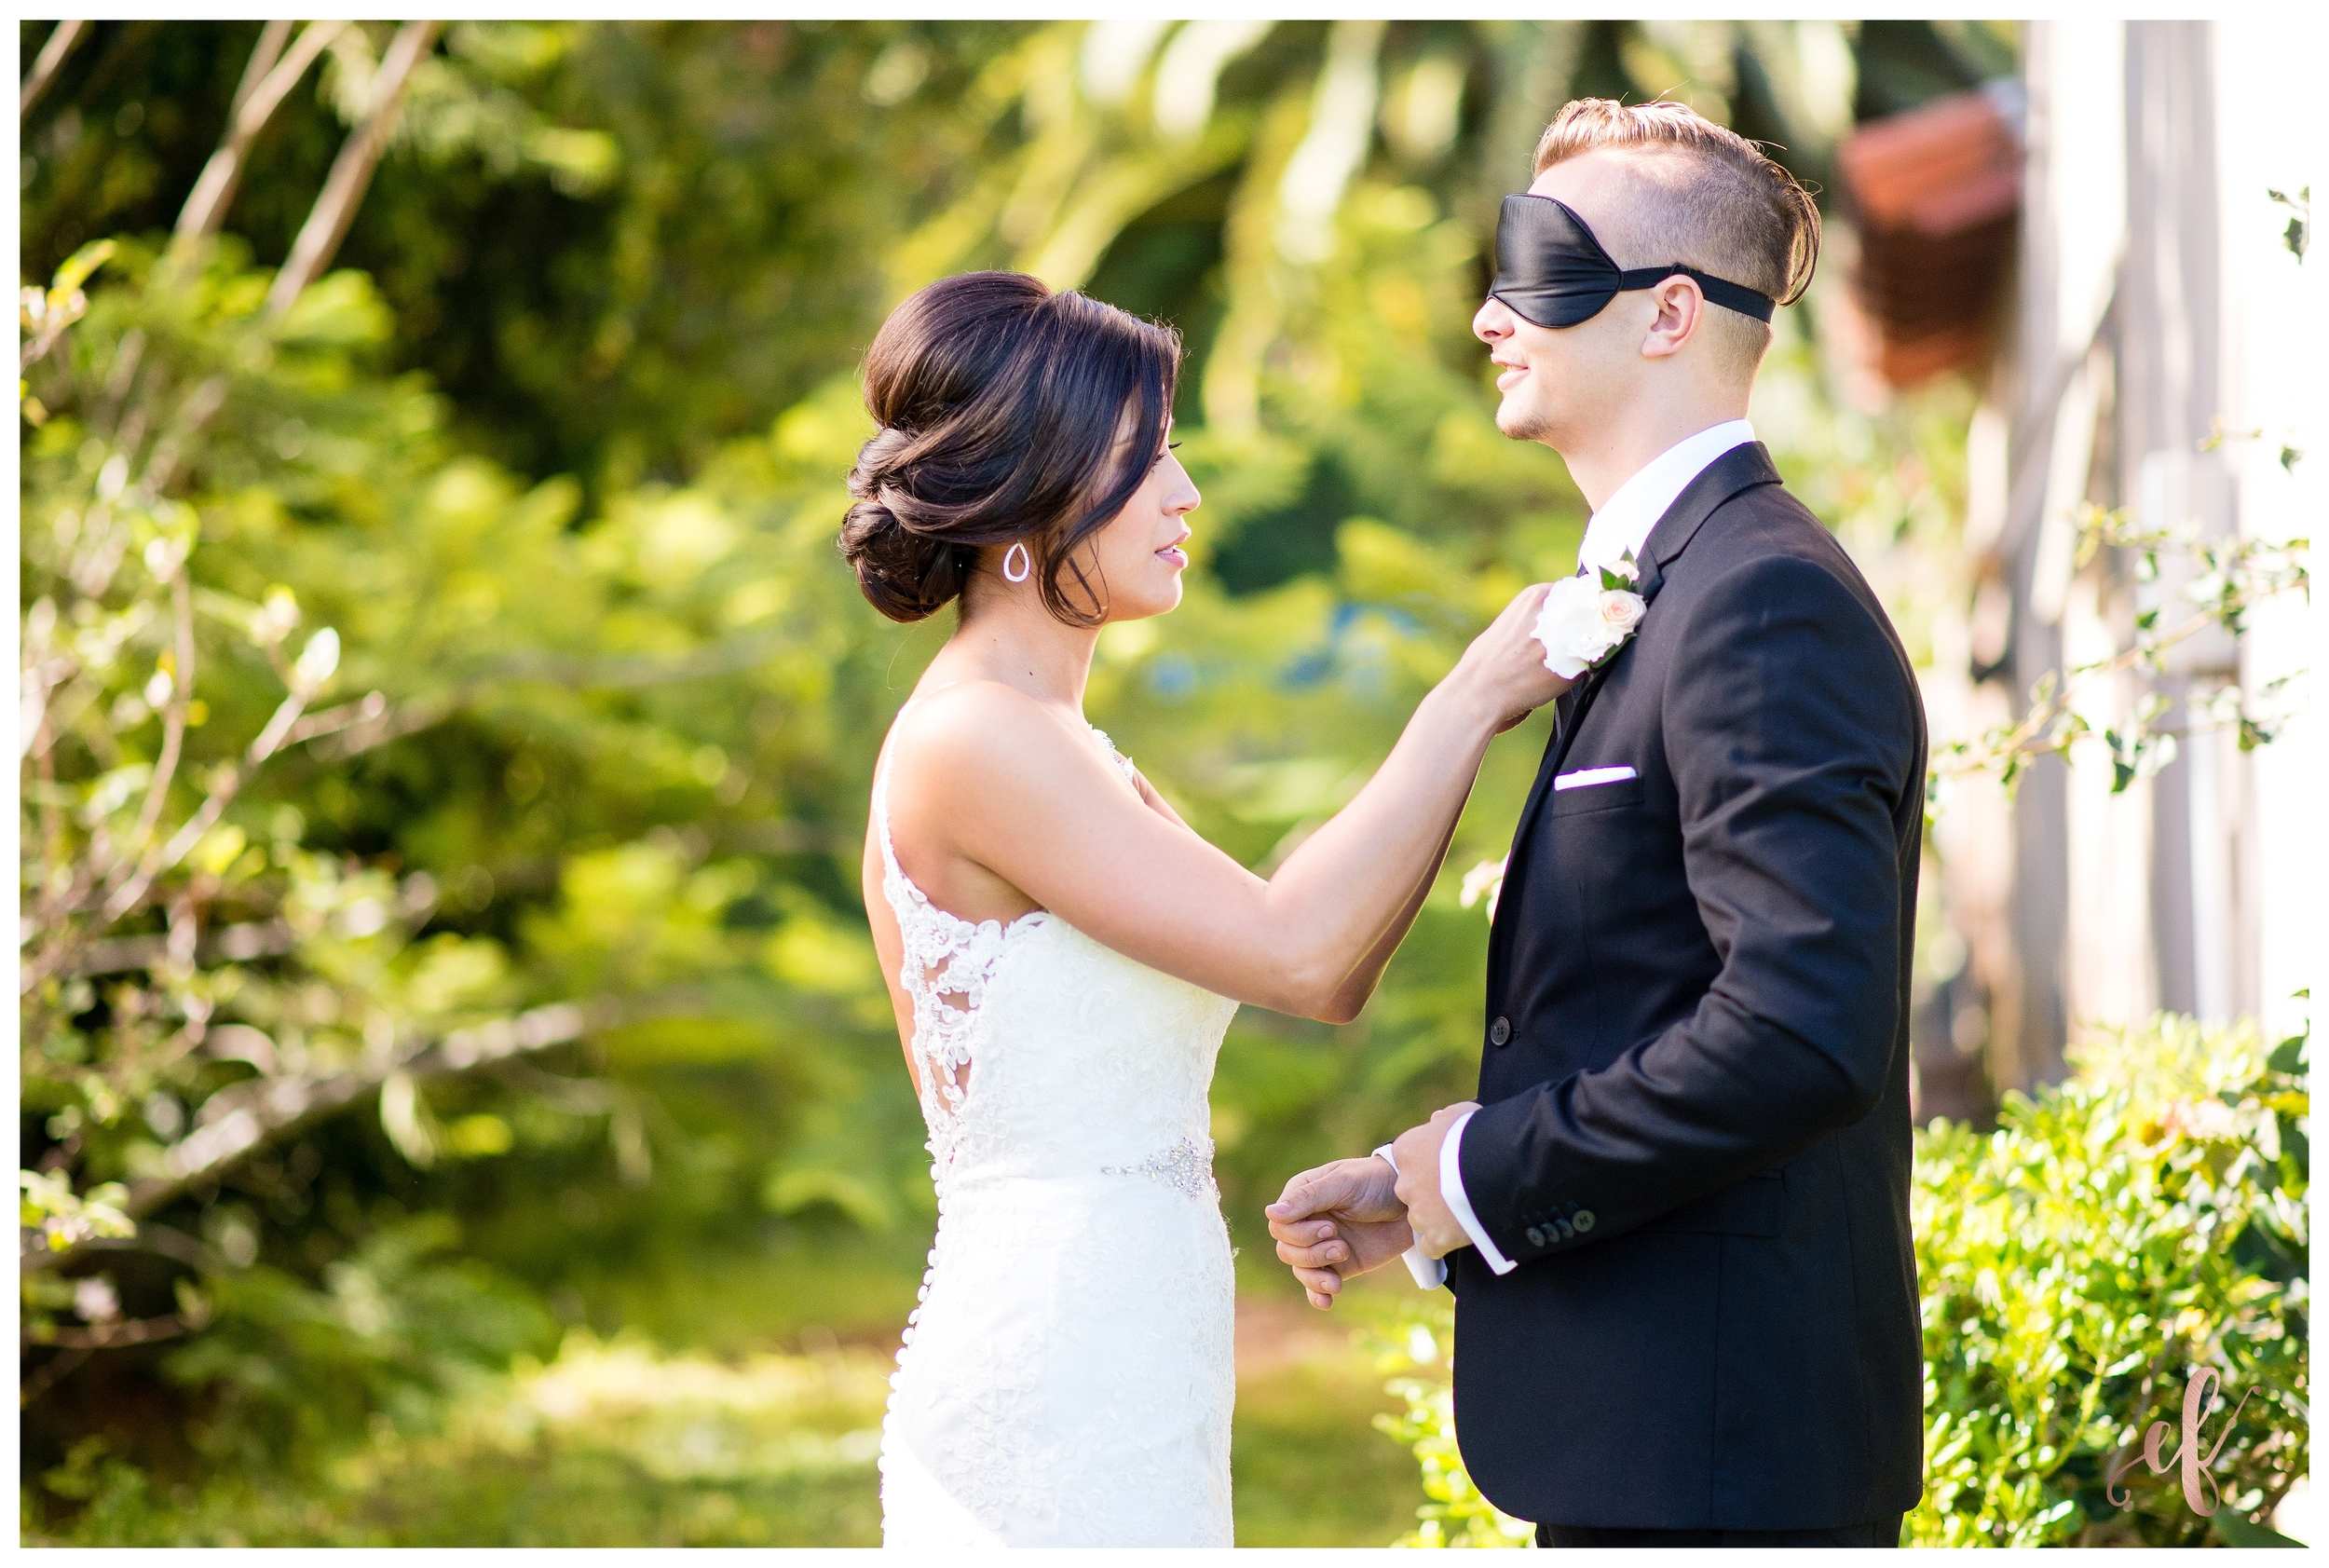 San Diego Wedding Photography | Bride | Groom | Portraits | Blindfold | First Look